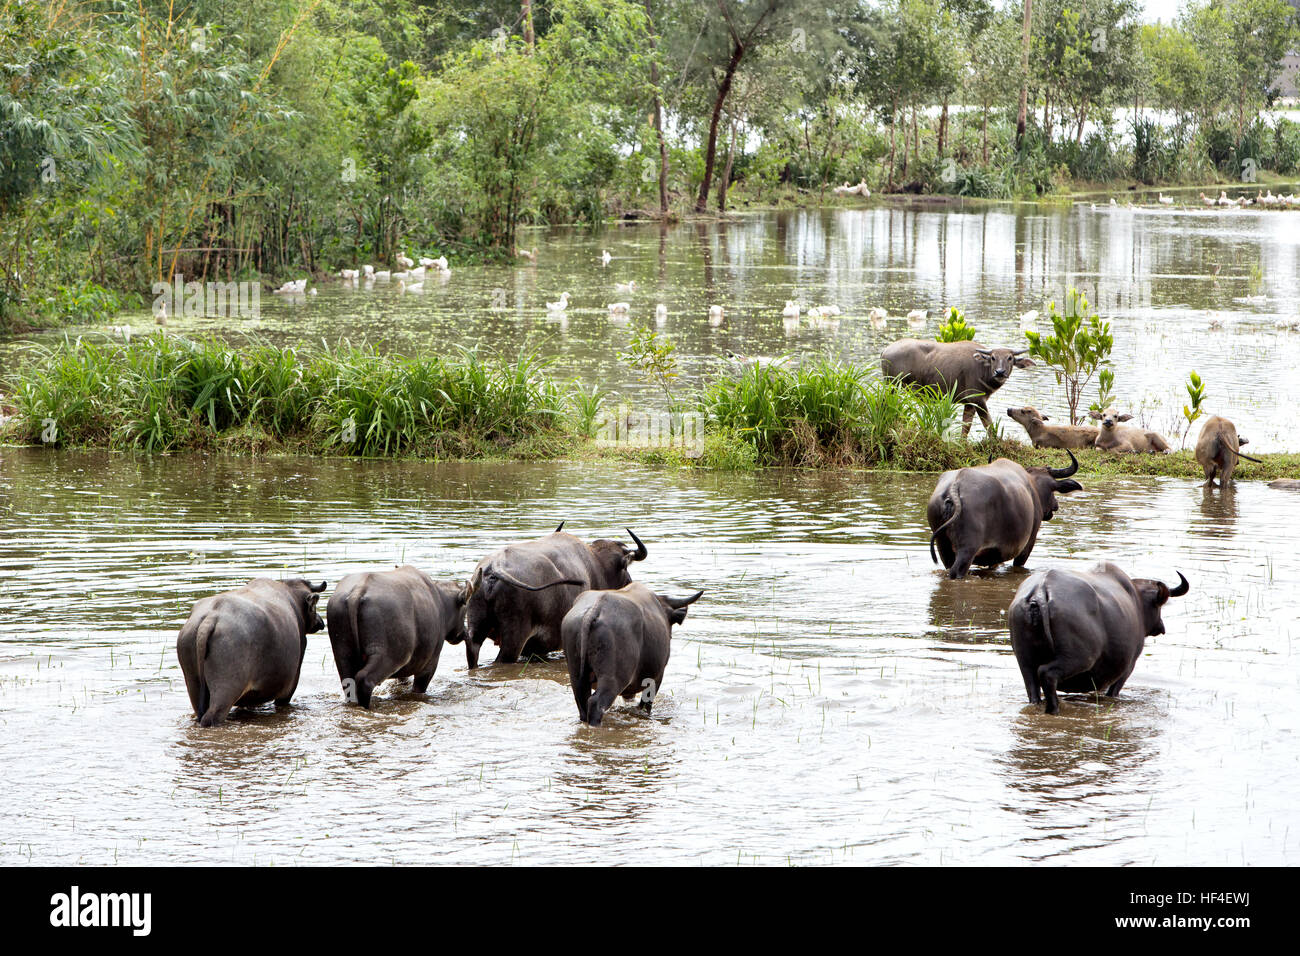 Water Buffaloes grazing in flooded rice field. - Stock Image